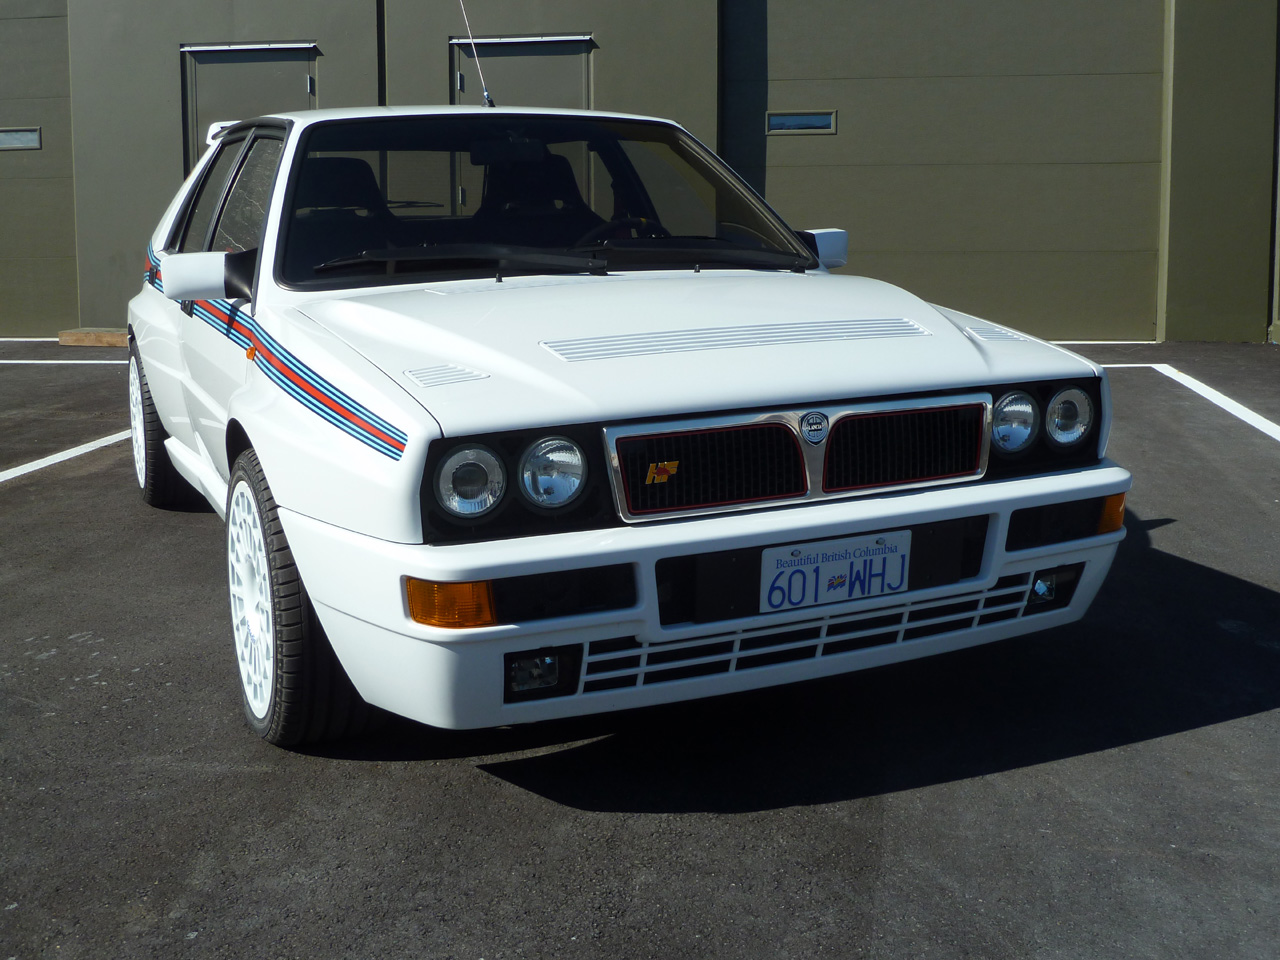 1992 Lancia Delta Integrale Martini 5. Back to Post · Small · Medium · Large